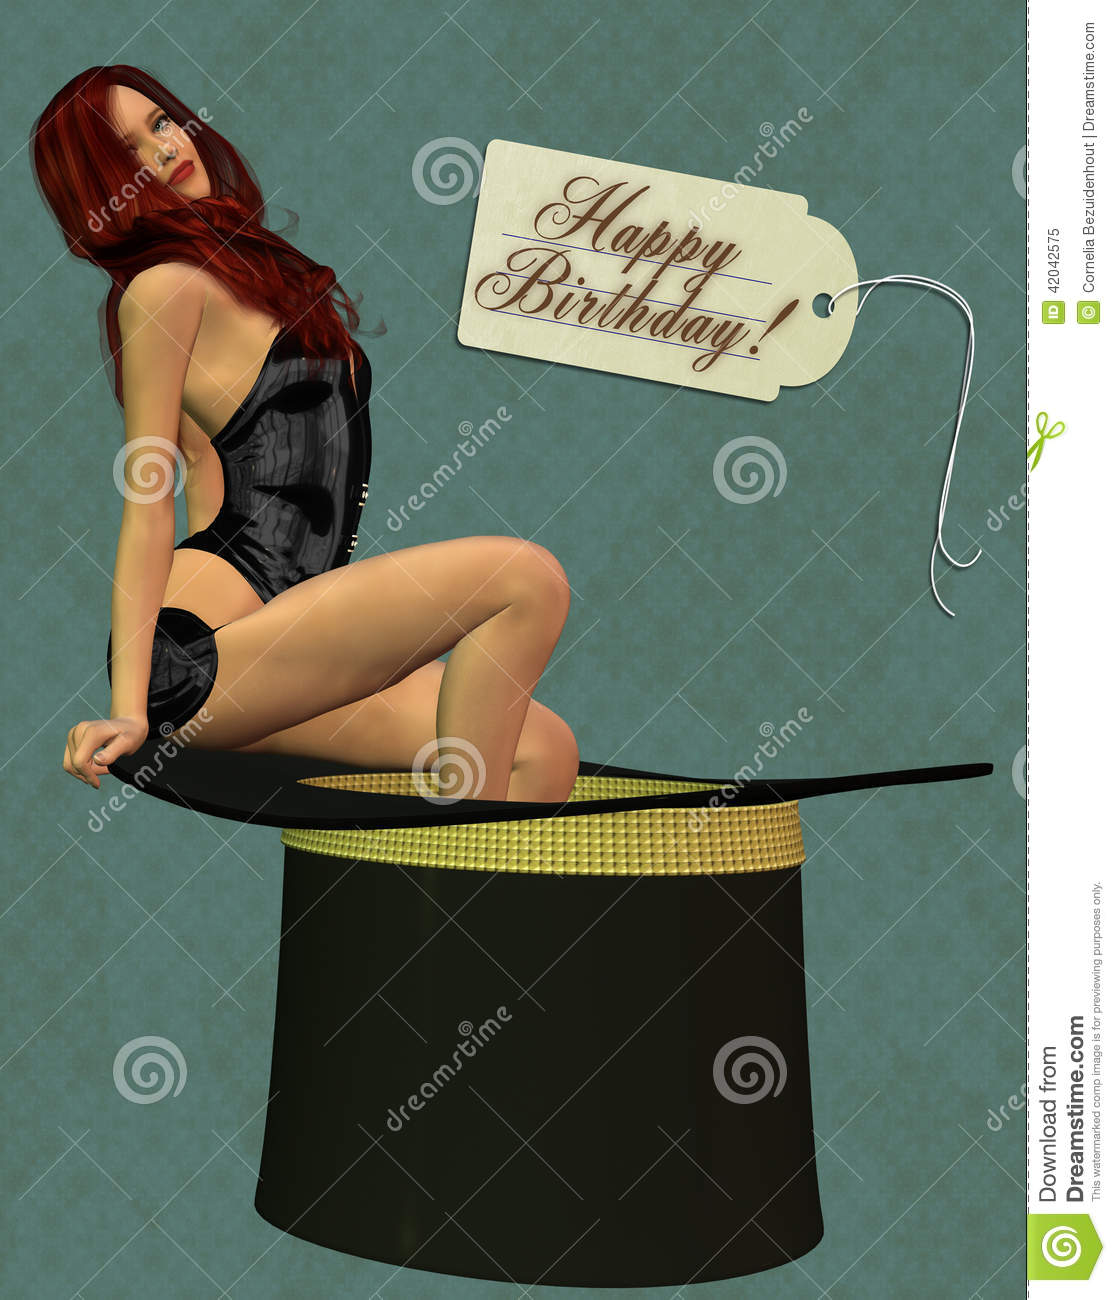 happy birthday card stock photo  image, Birthday card